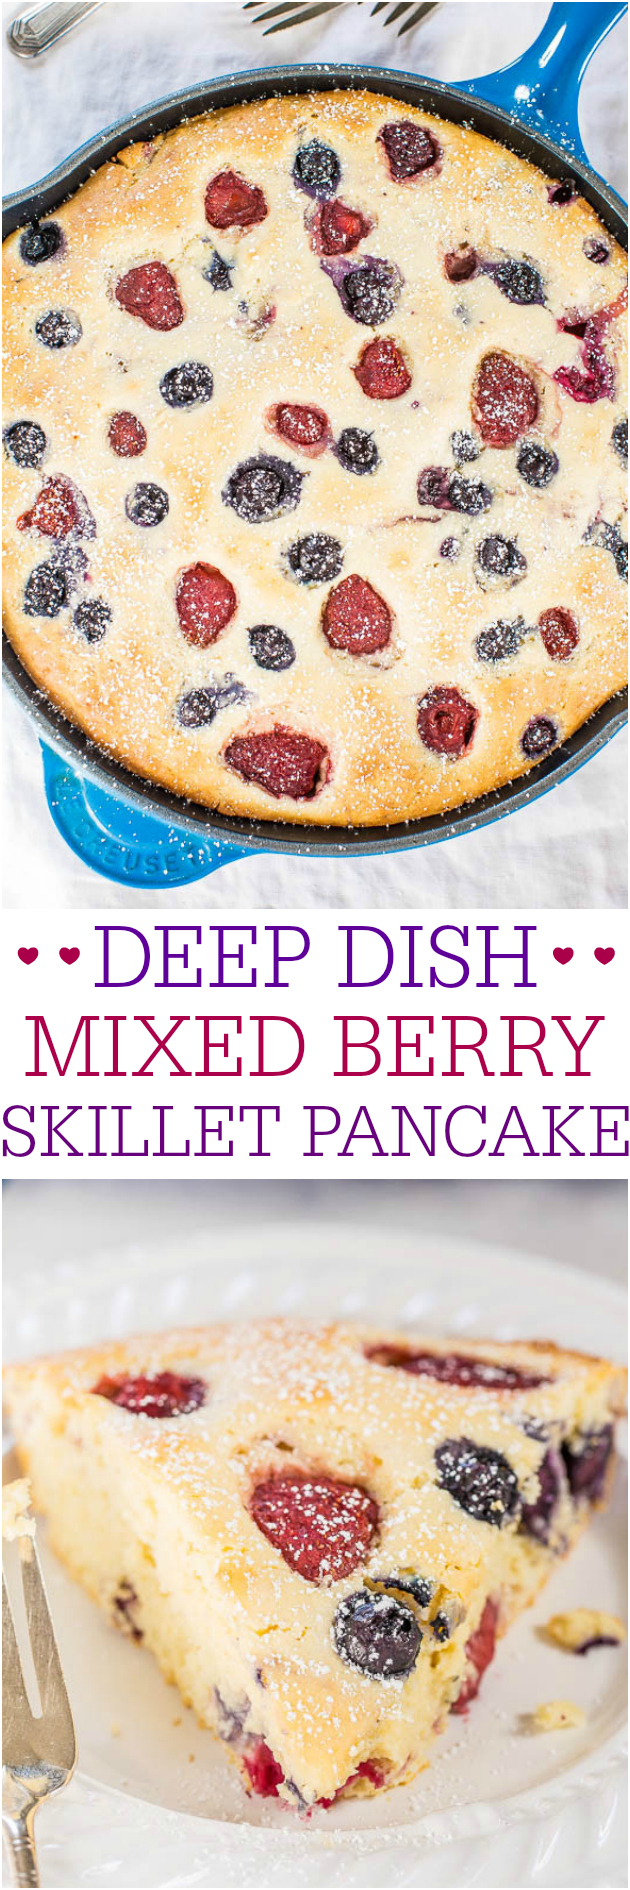 Deep Dish Mixed Berry Skillet Pancake - The easiest and thickest pancake ever! No flipping or standing at the stove so you can go relax!! Perfect easy brunch recipe!